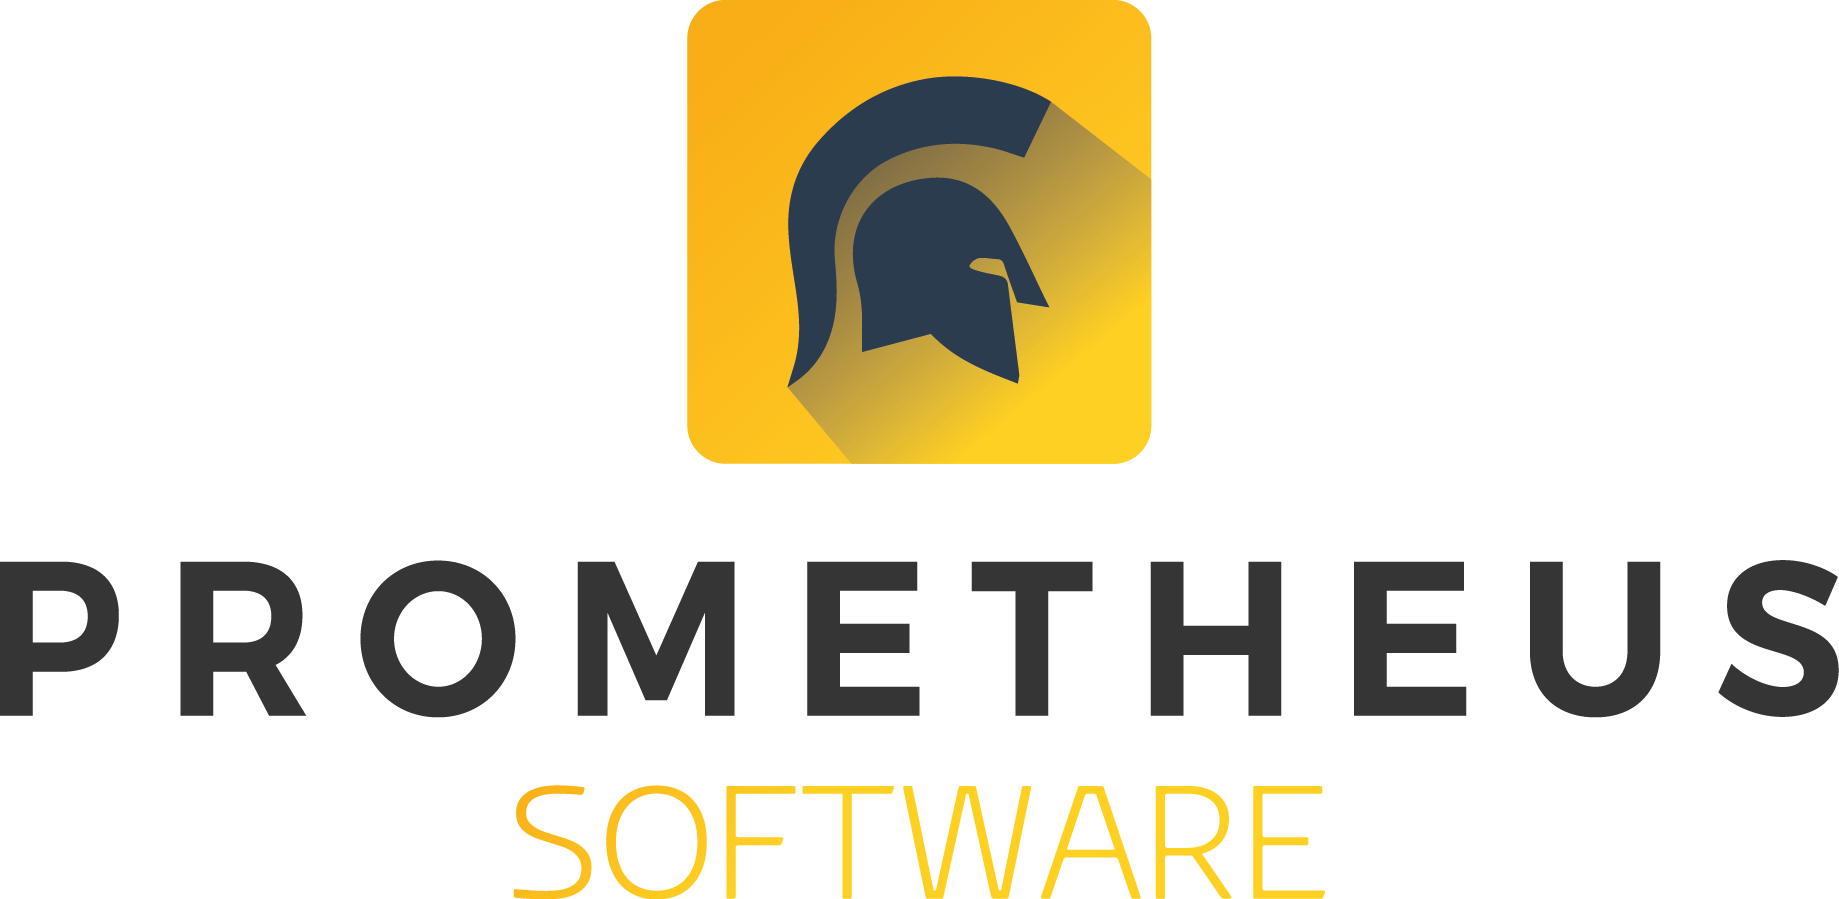 Prometheus Software vertical logo